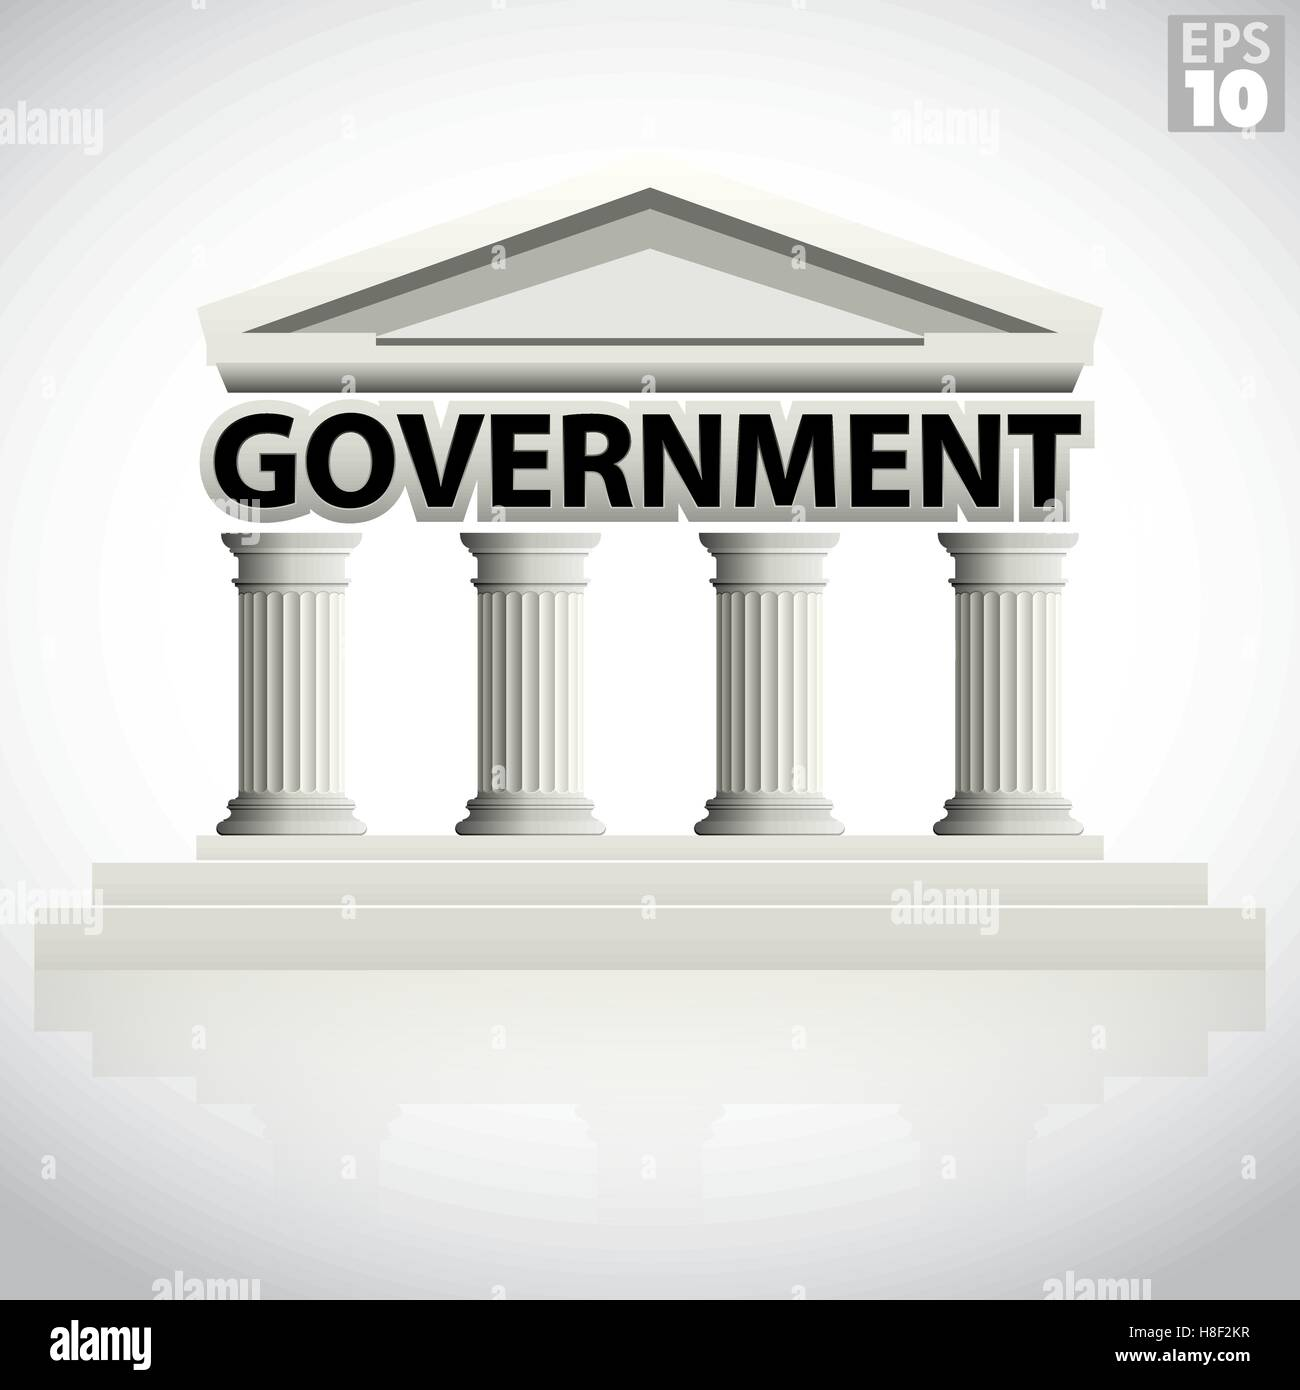 Government building icon with greek columns and pointed pediment - Stock Vector